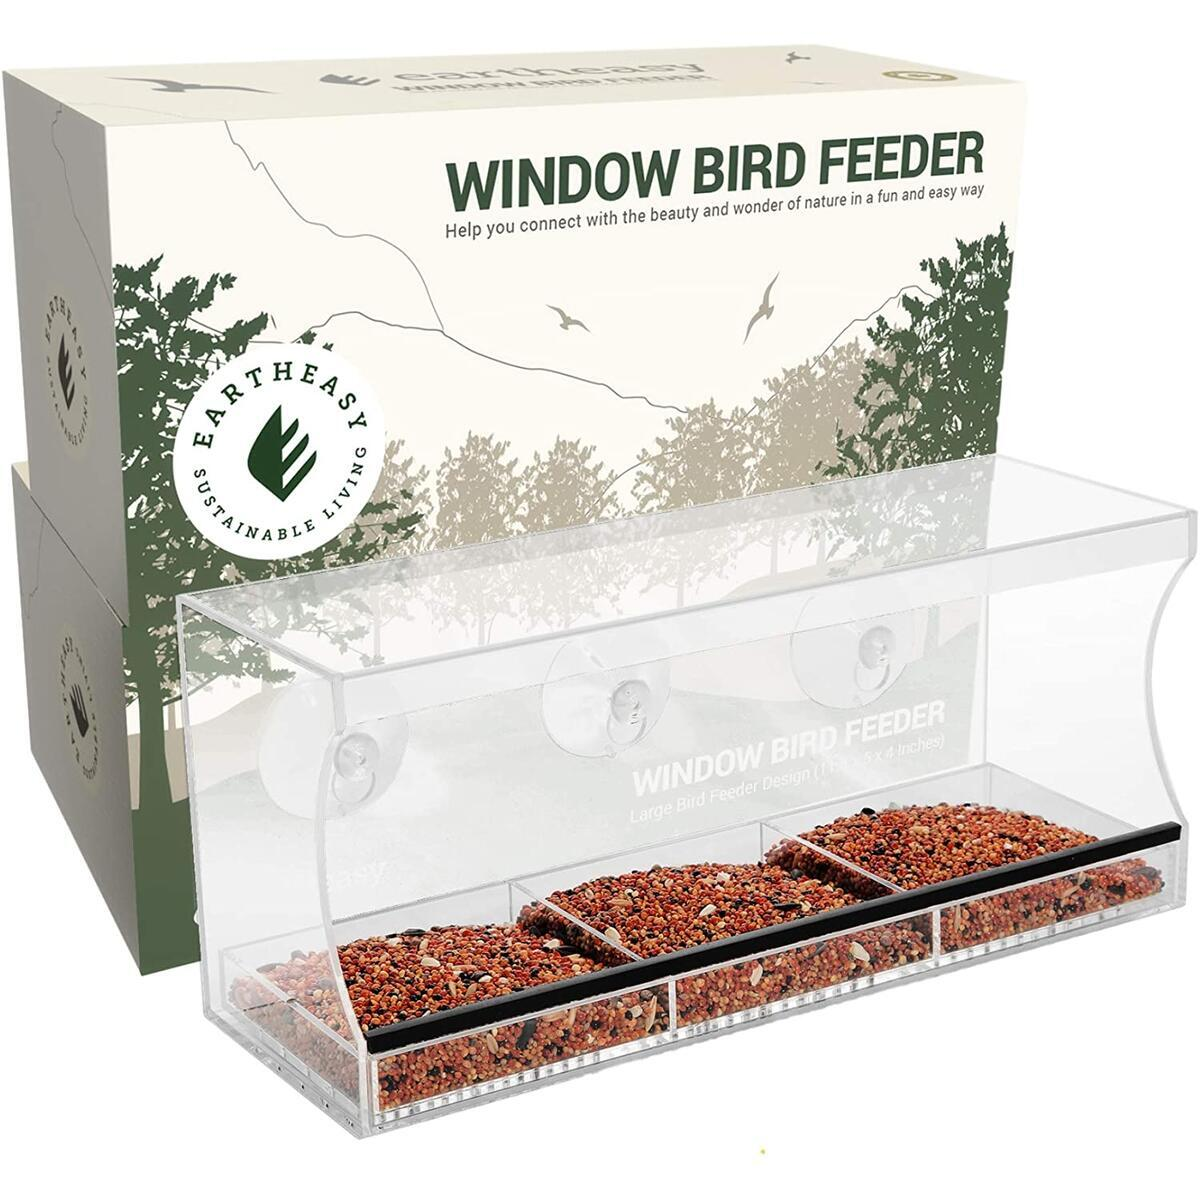 Eartheasy Window Bird Feeder with Free Window Decals – Large Bird Feeders for Outside with Strong Suction Cups and Removable Seed Tray – Perfect for Wild Birds, Finch, Cardinal, Bluebird, Love Birds